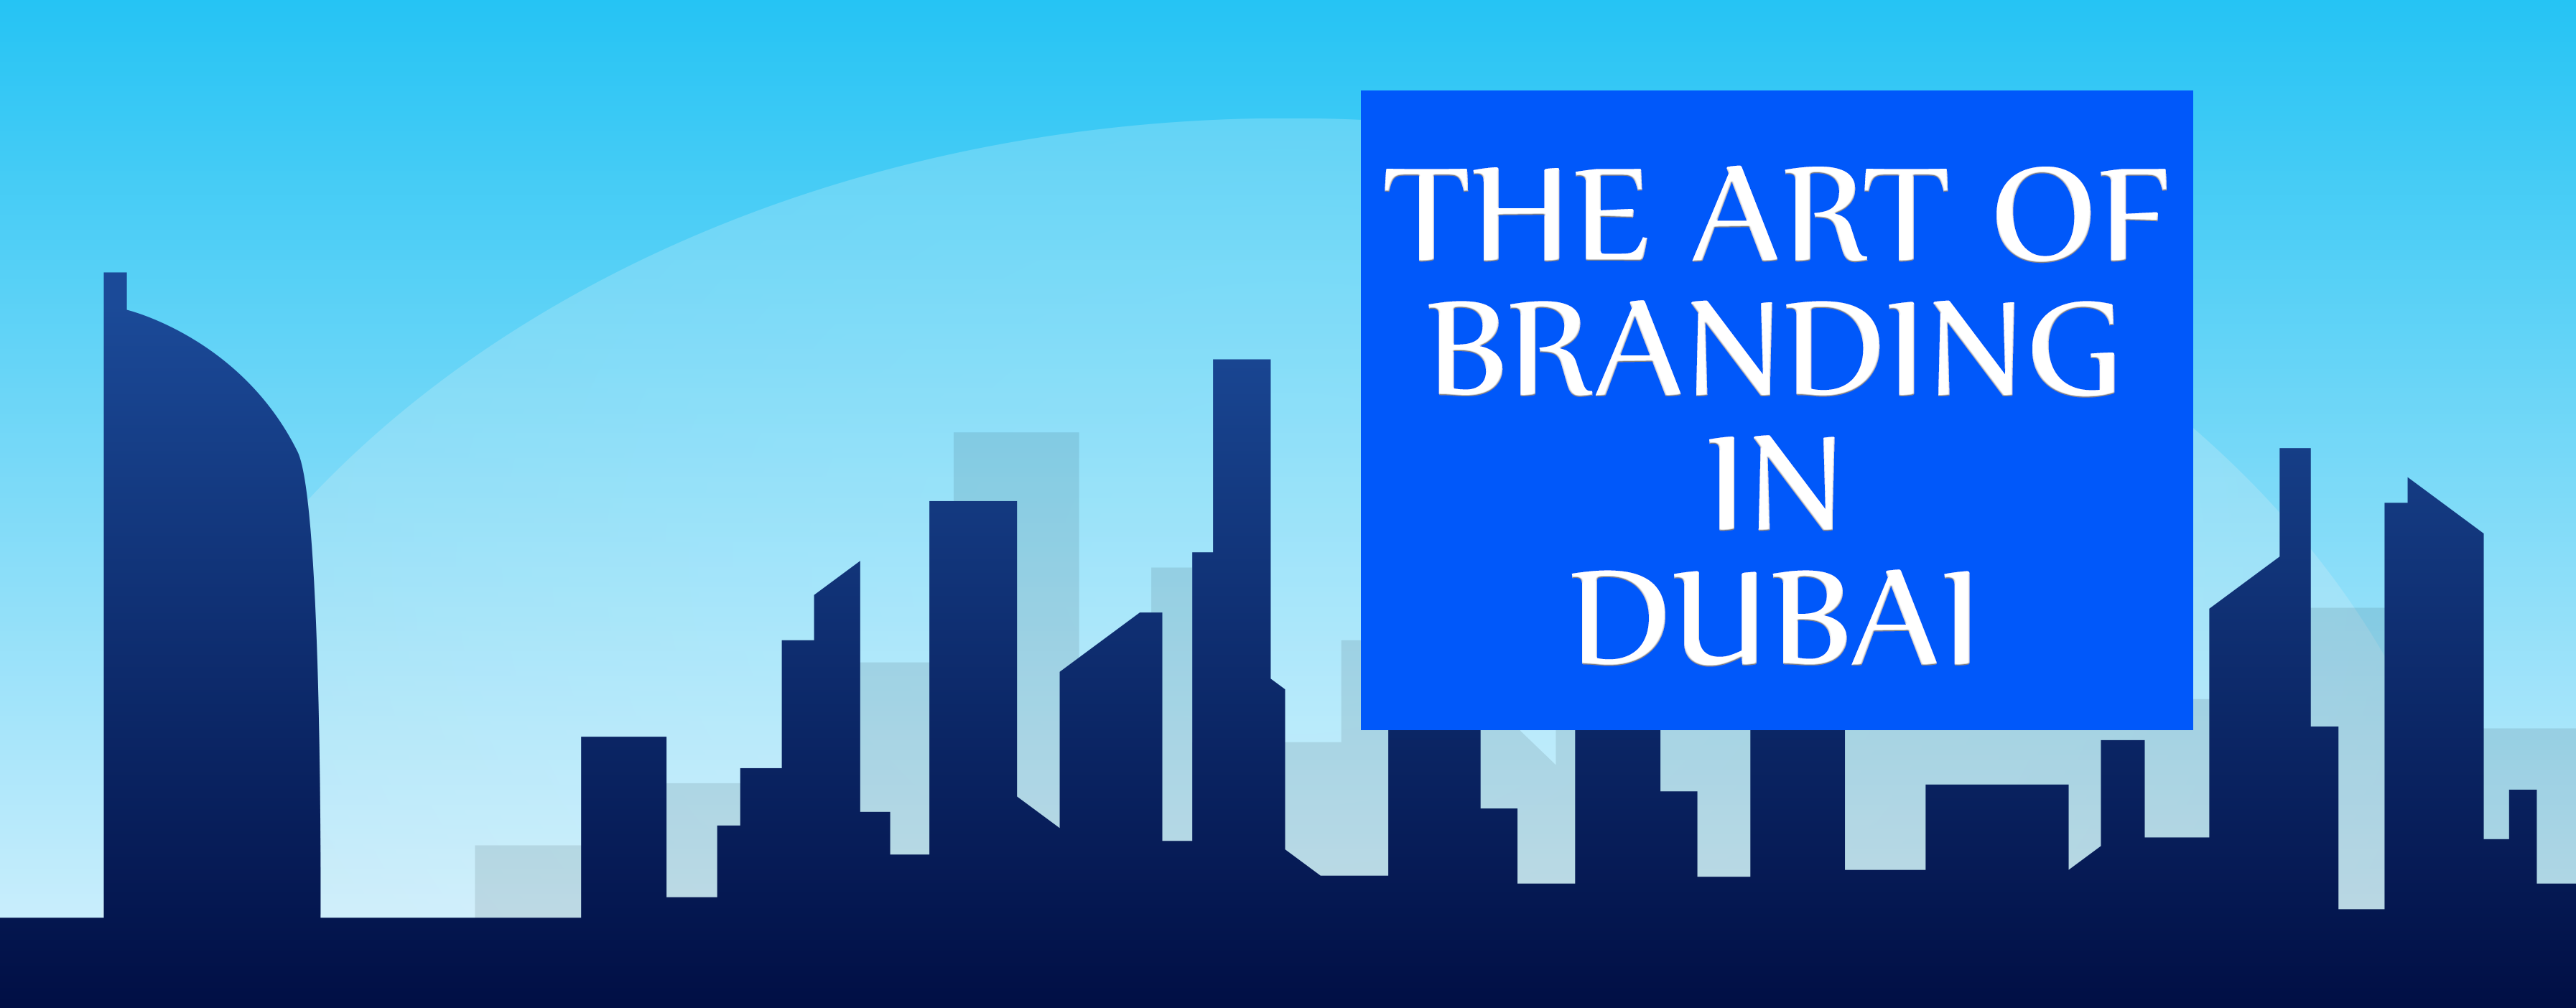 Dubai and Business branding - How to nail it.